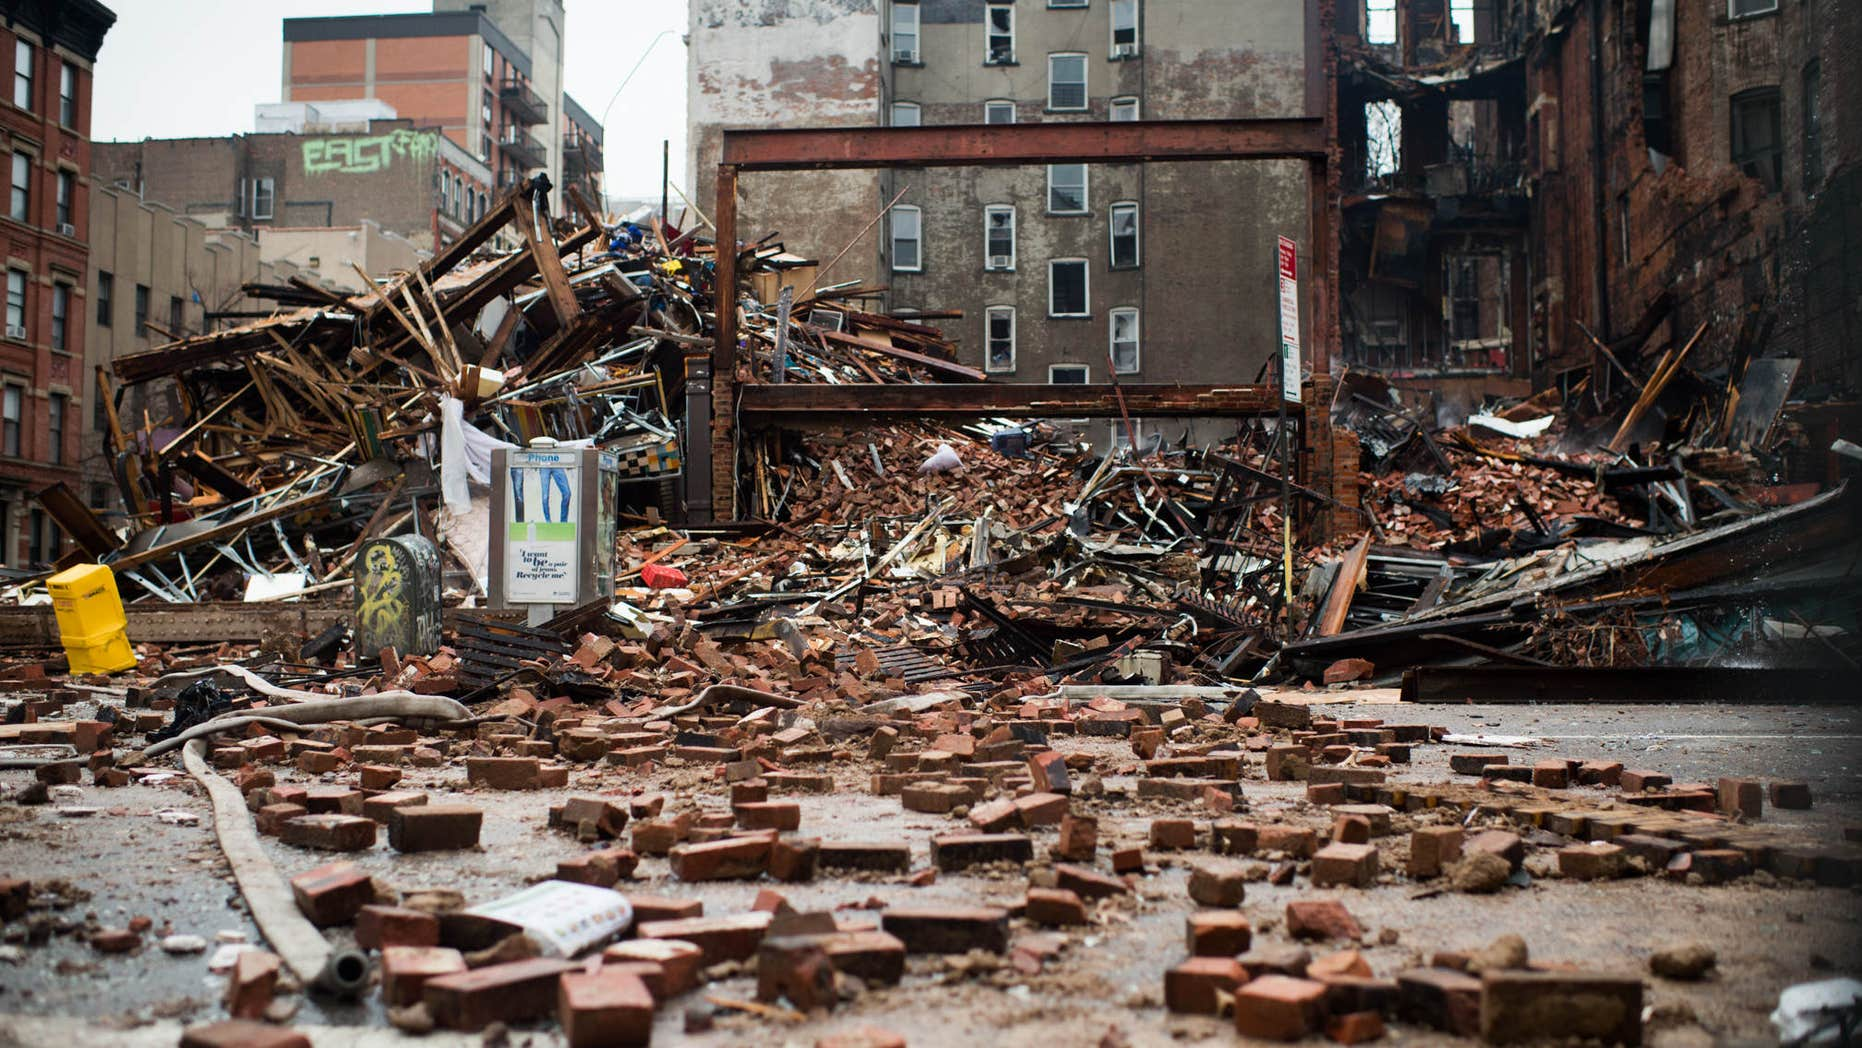 March 27, 2015: A pile of debris remains at the site of a building explosion in the East Village neighborhood of New York.